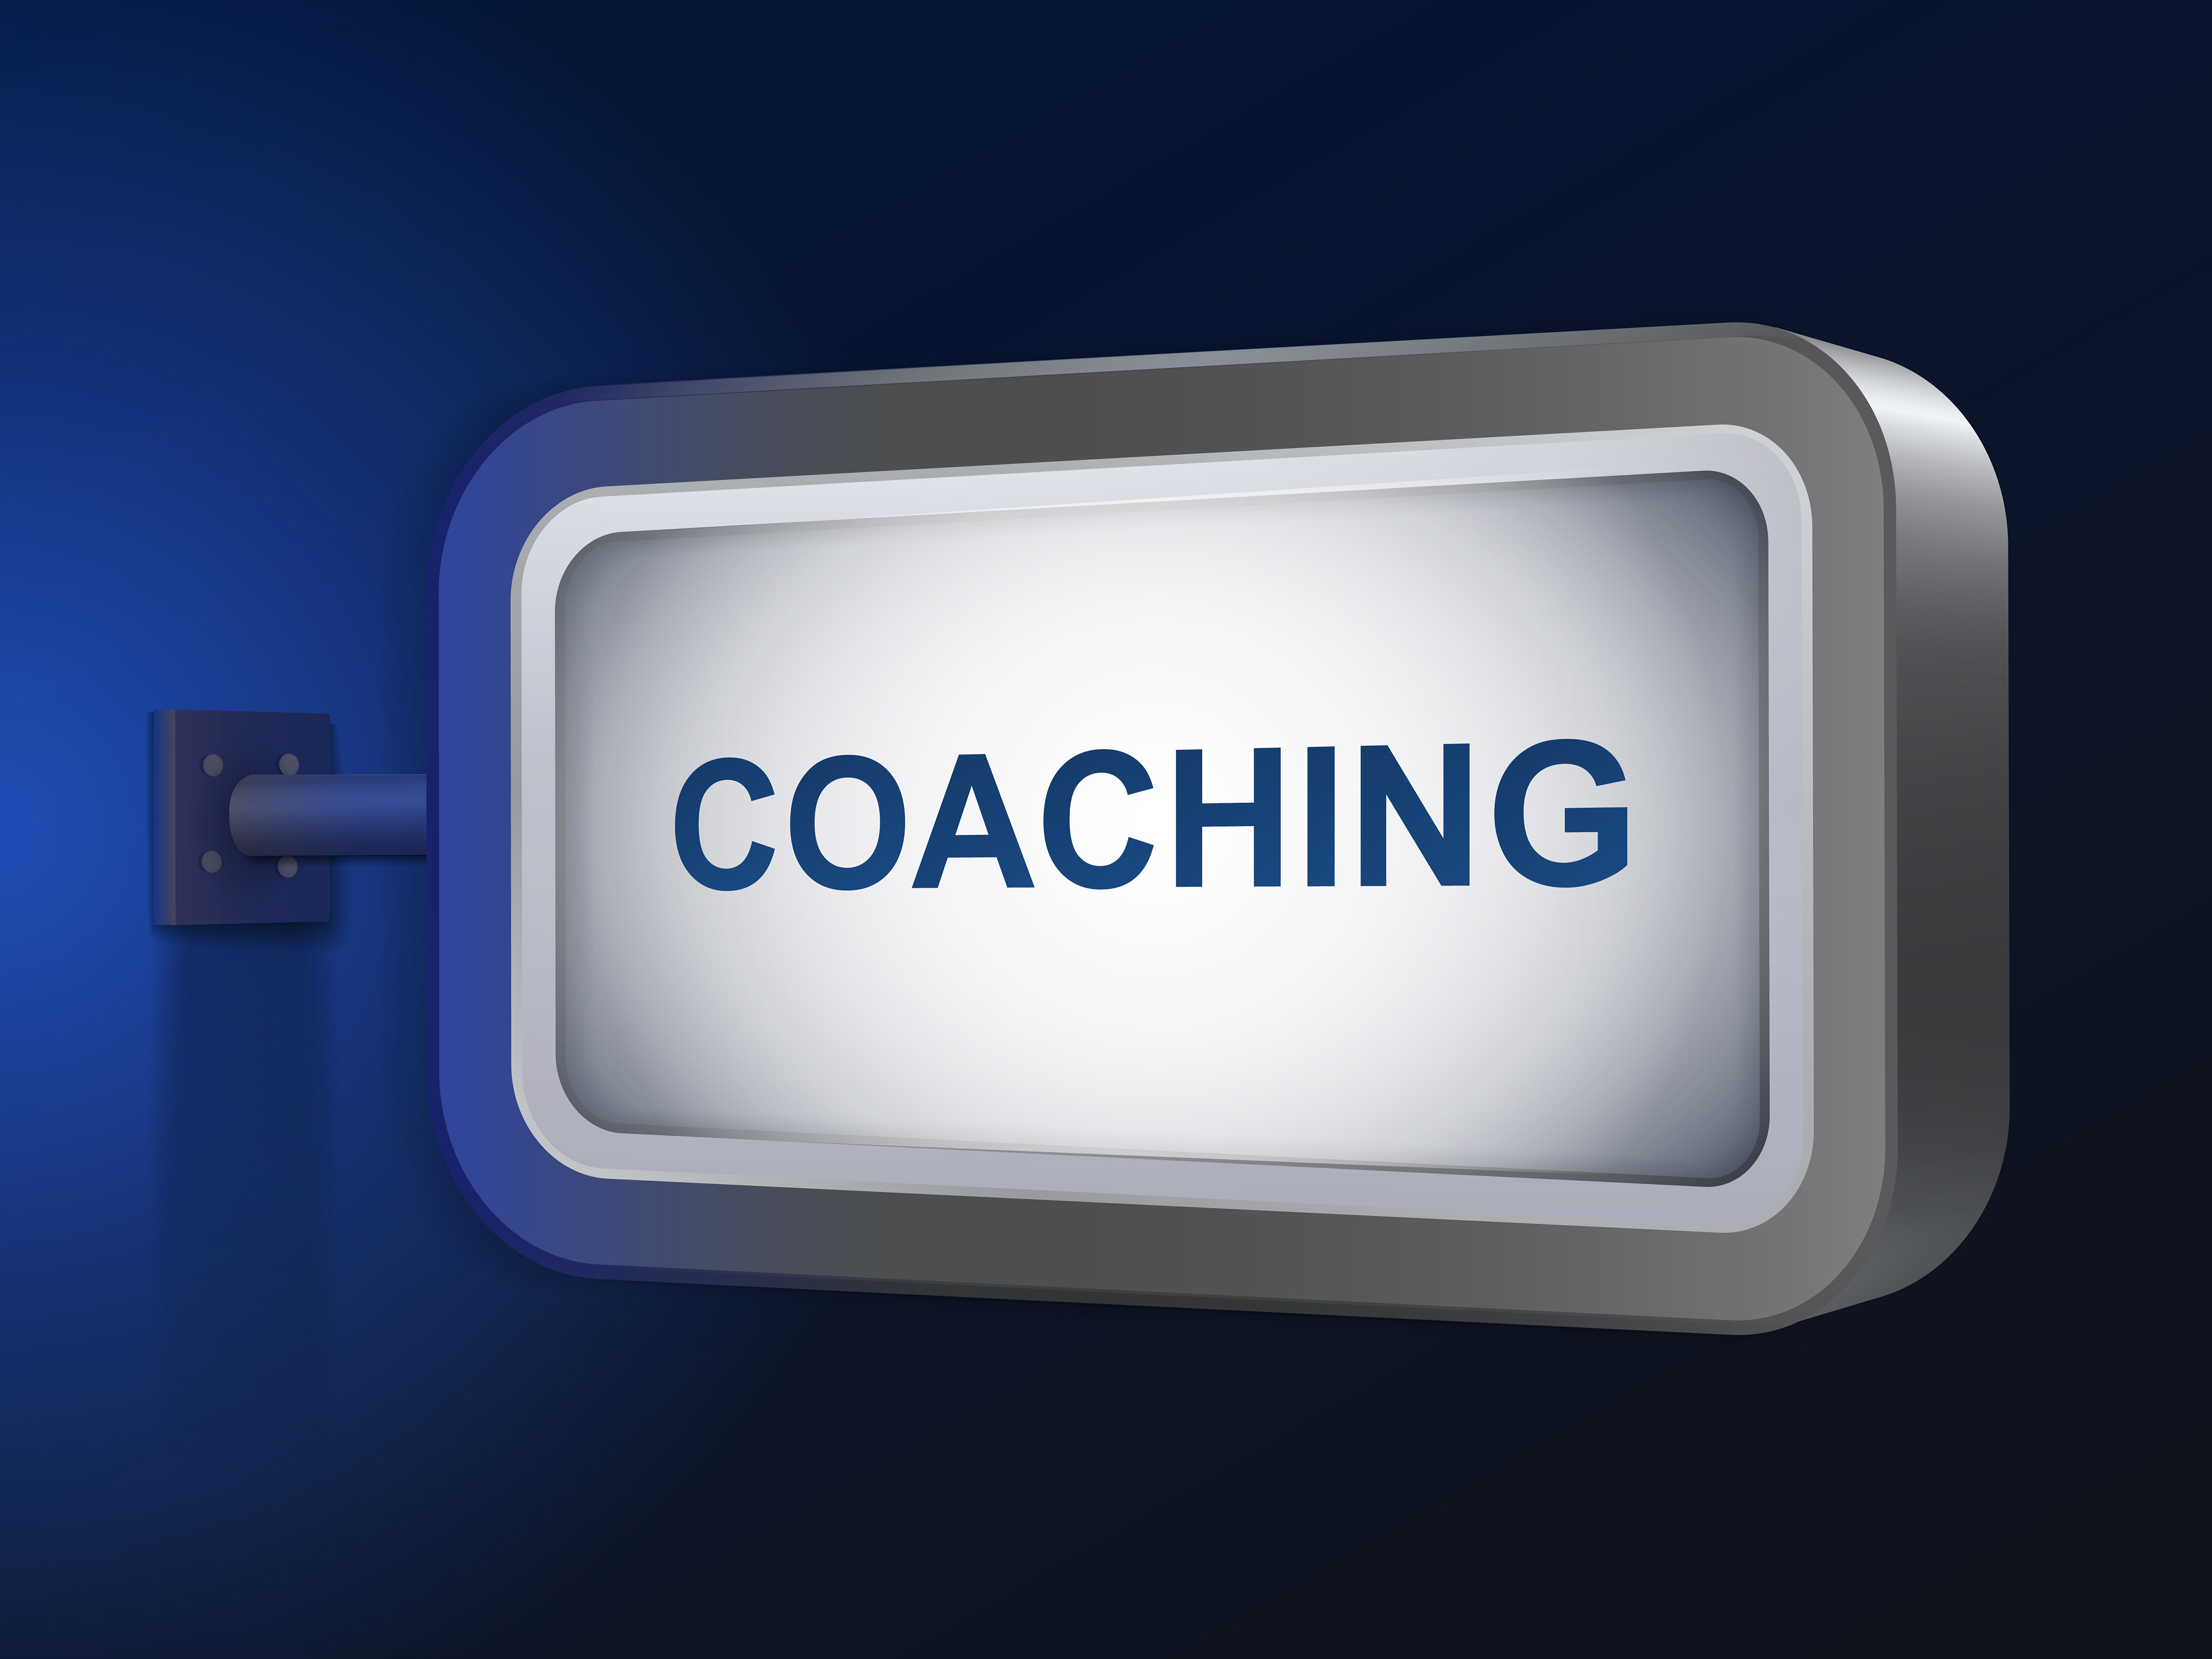 coaching word on billboard over blue background